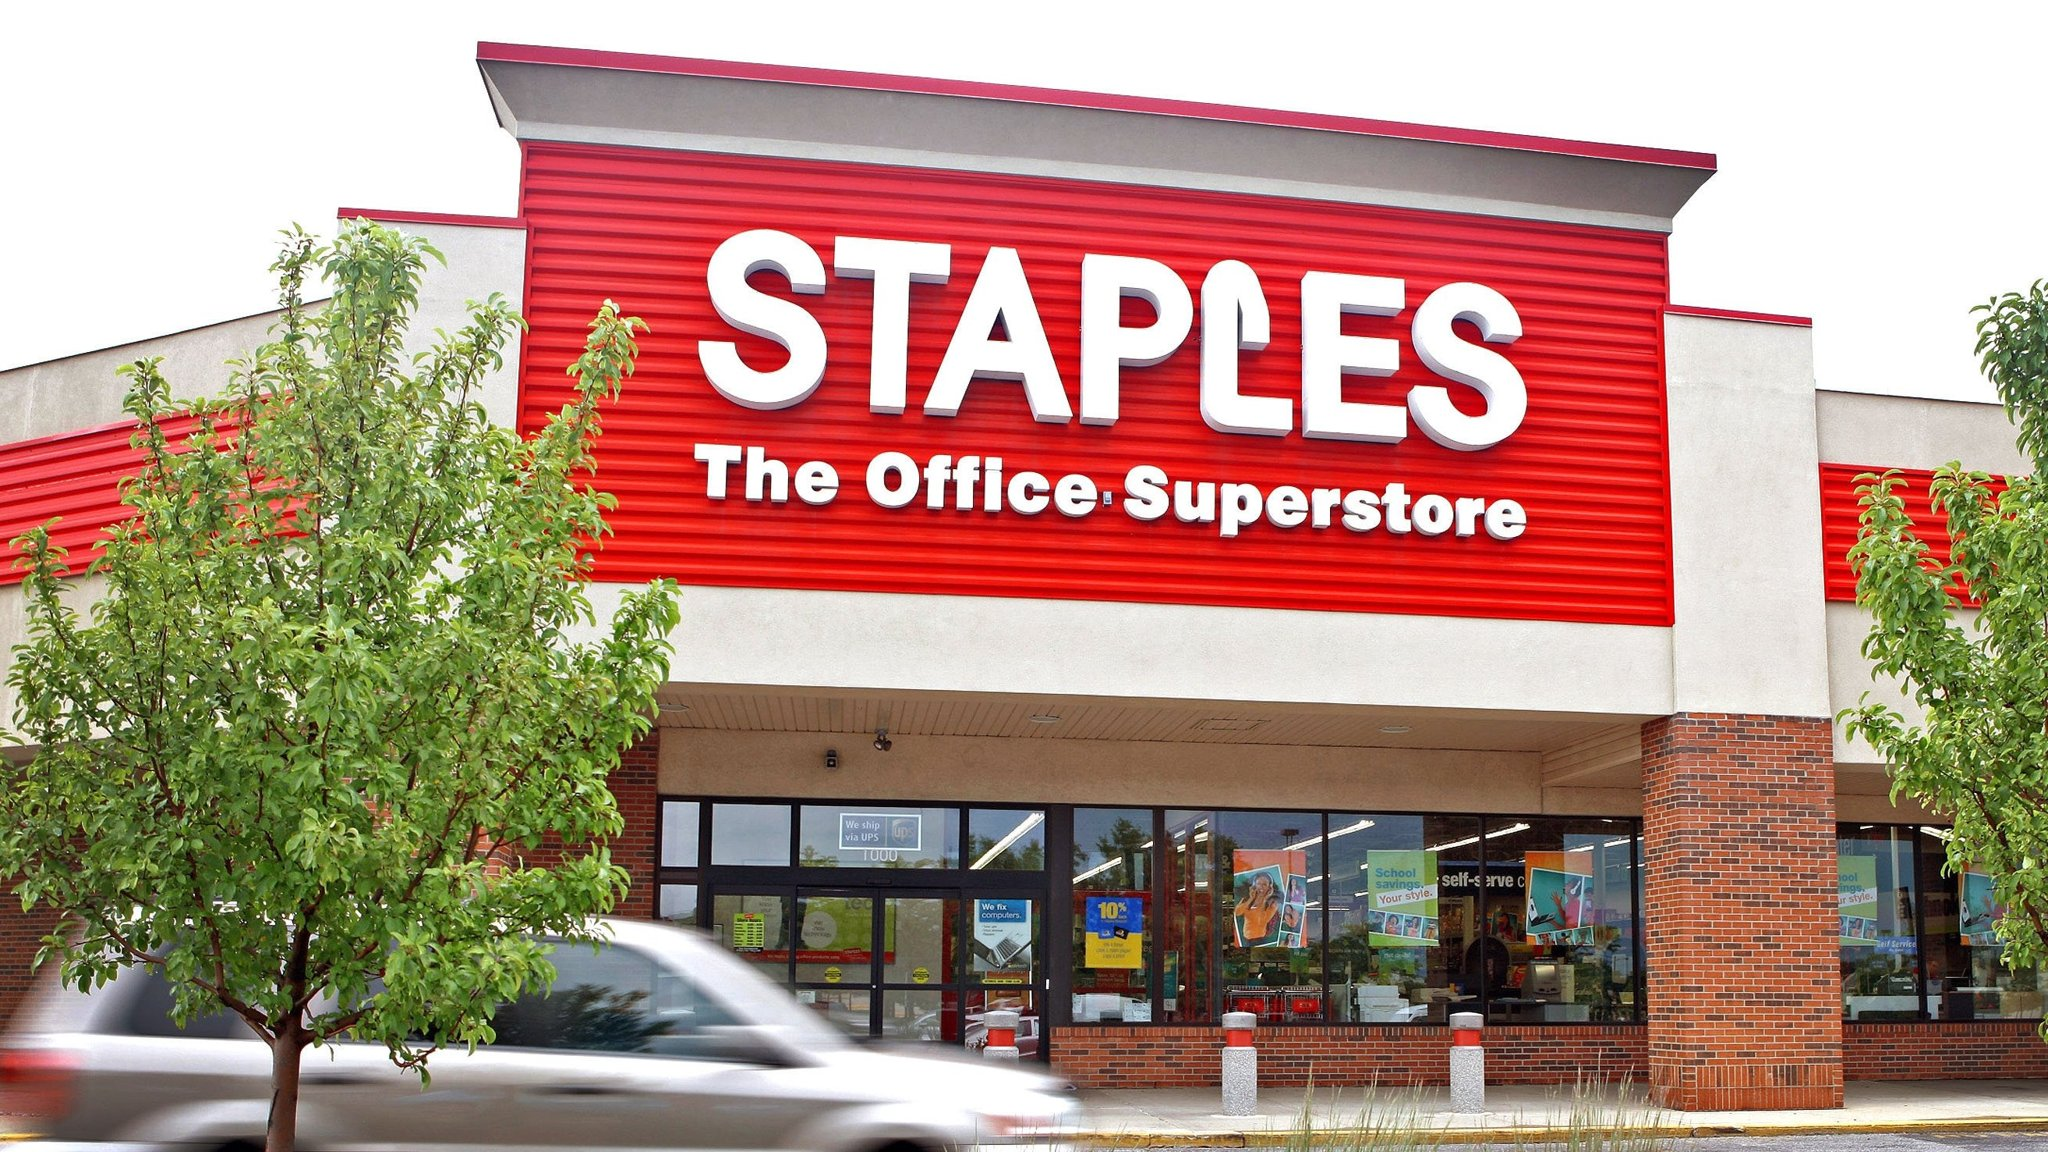 hilco capital to staples uk arm for nominal sum